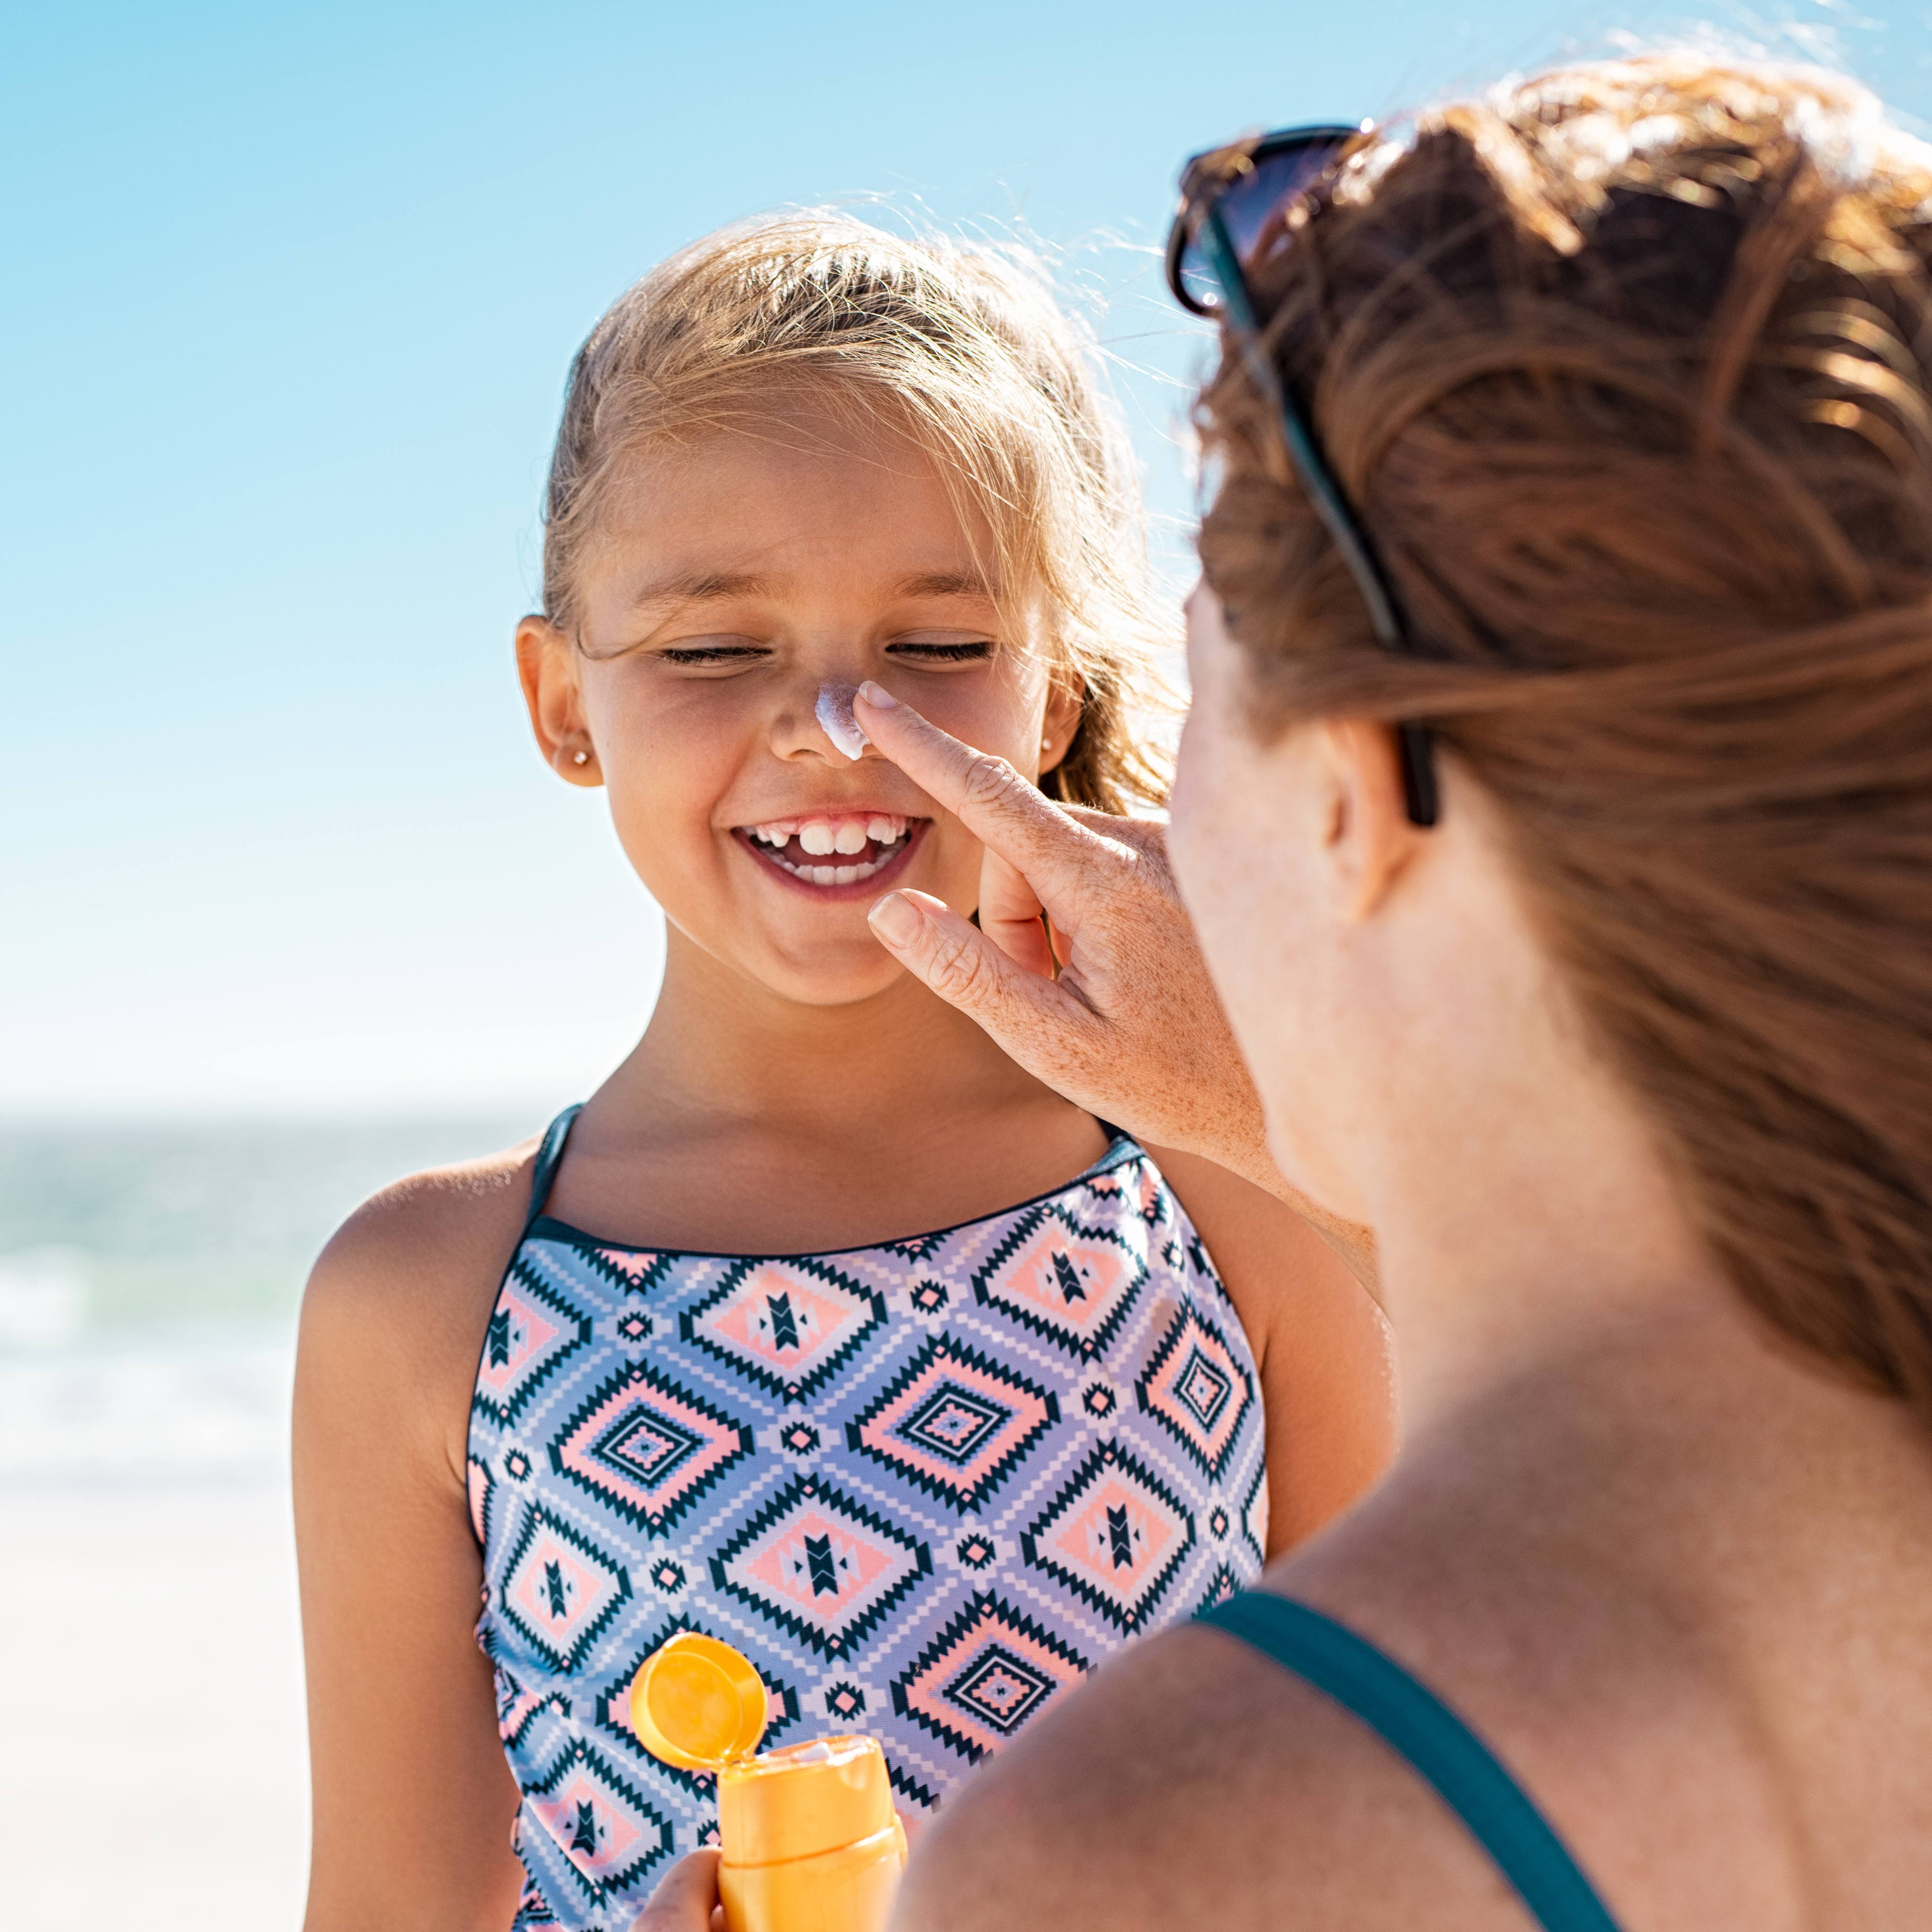 a woman applying sunscreen to the nose of a laughing young girl at the beach